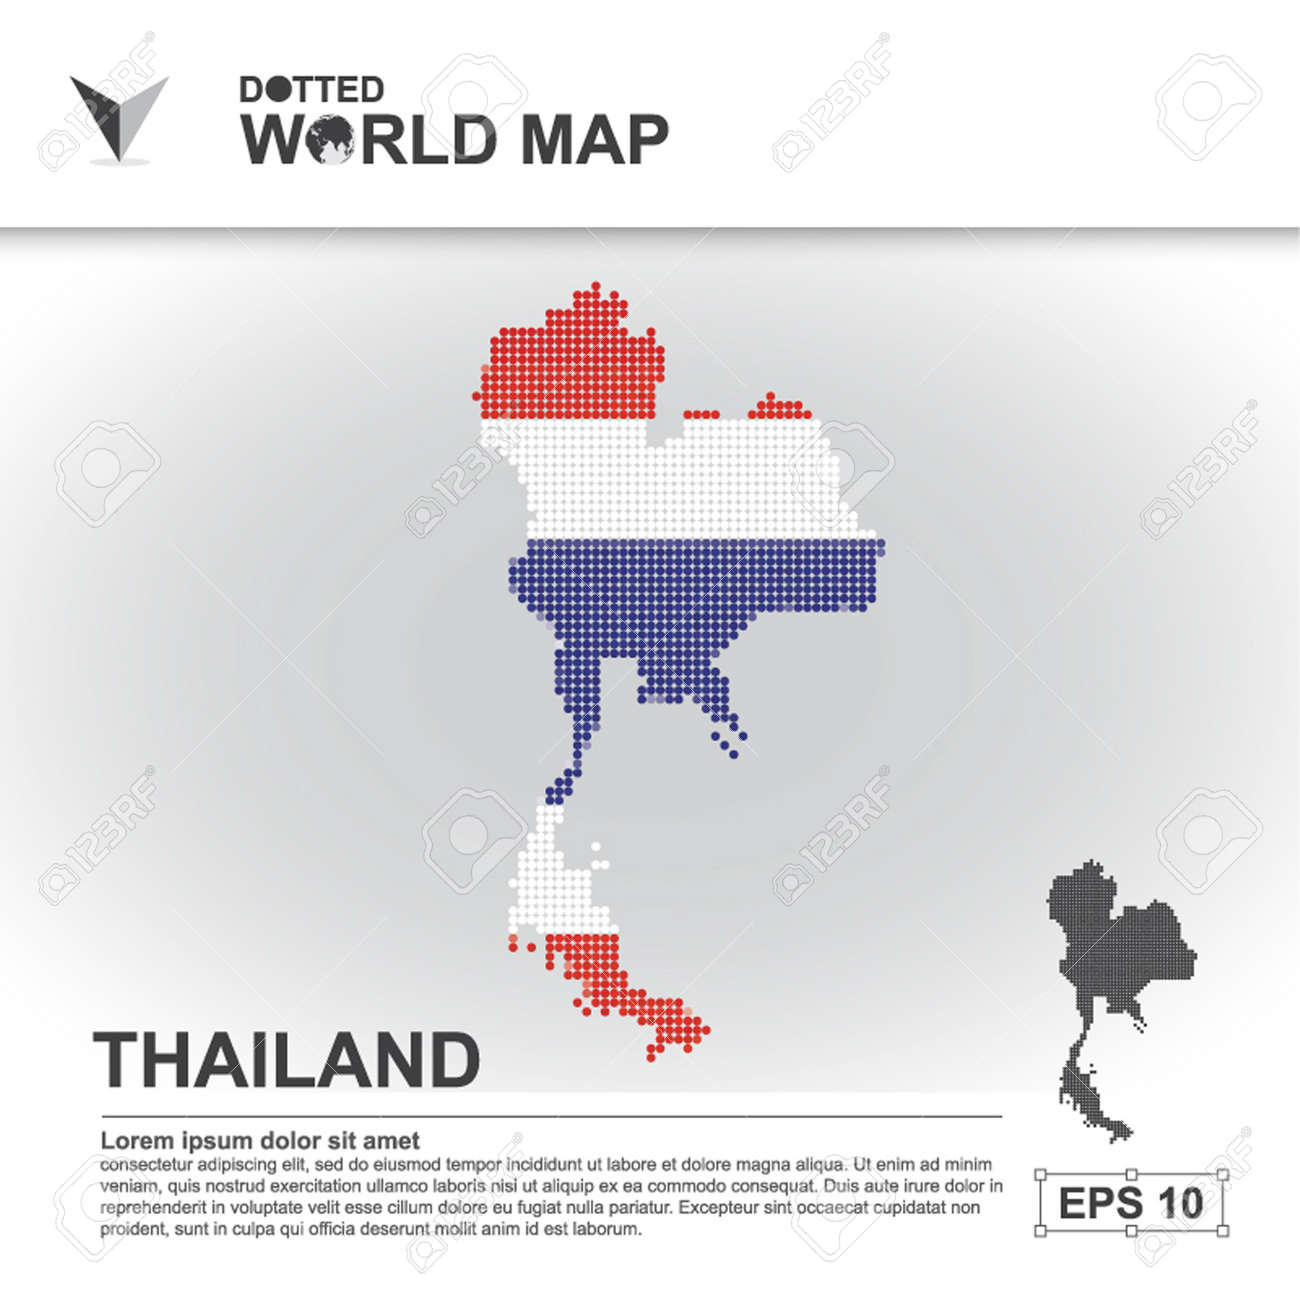 map, asean, illustration, dot, background, dotted, asia, southeast, country, vector, design, community, asian, modern, white, graphic,background, world, design, travel,art, infographic,geography, concept, abstract, dots, business, symbol, Thailand - 50007969